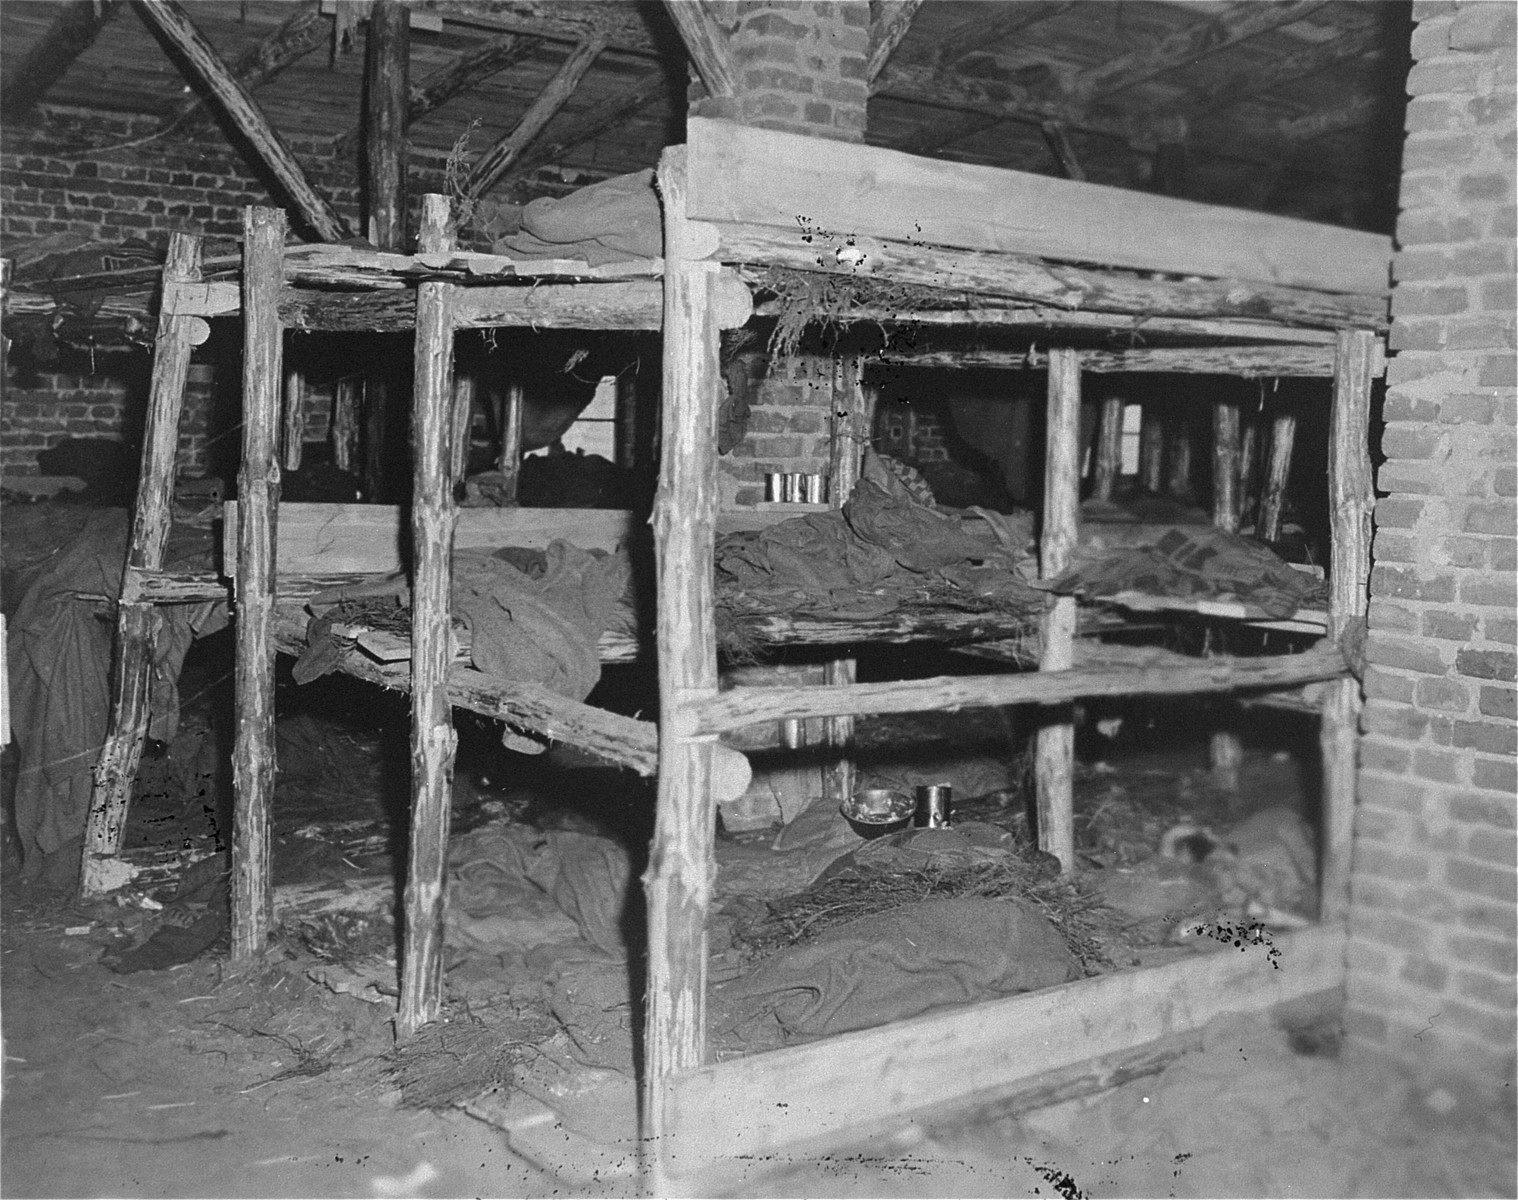 View of prisoners' bunks in a barracks in the Woebbelin concentration camp.